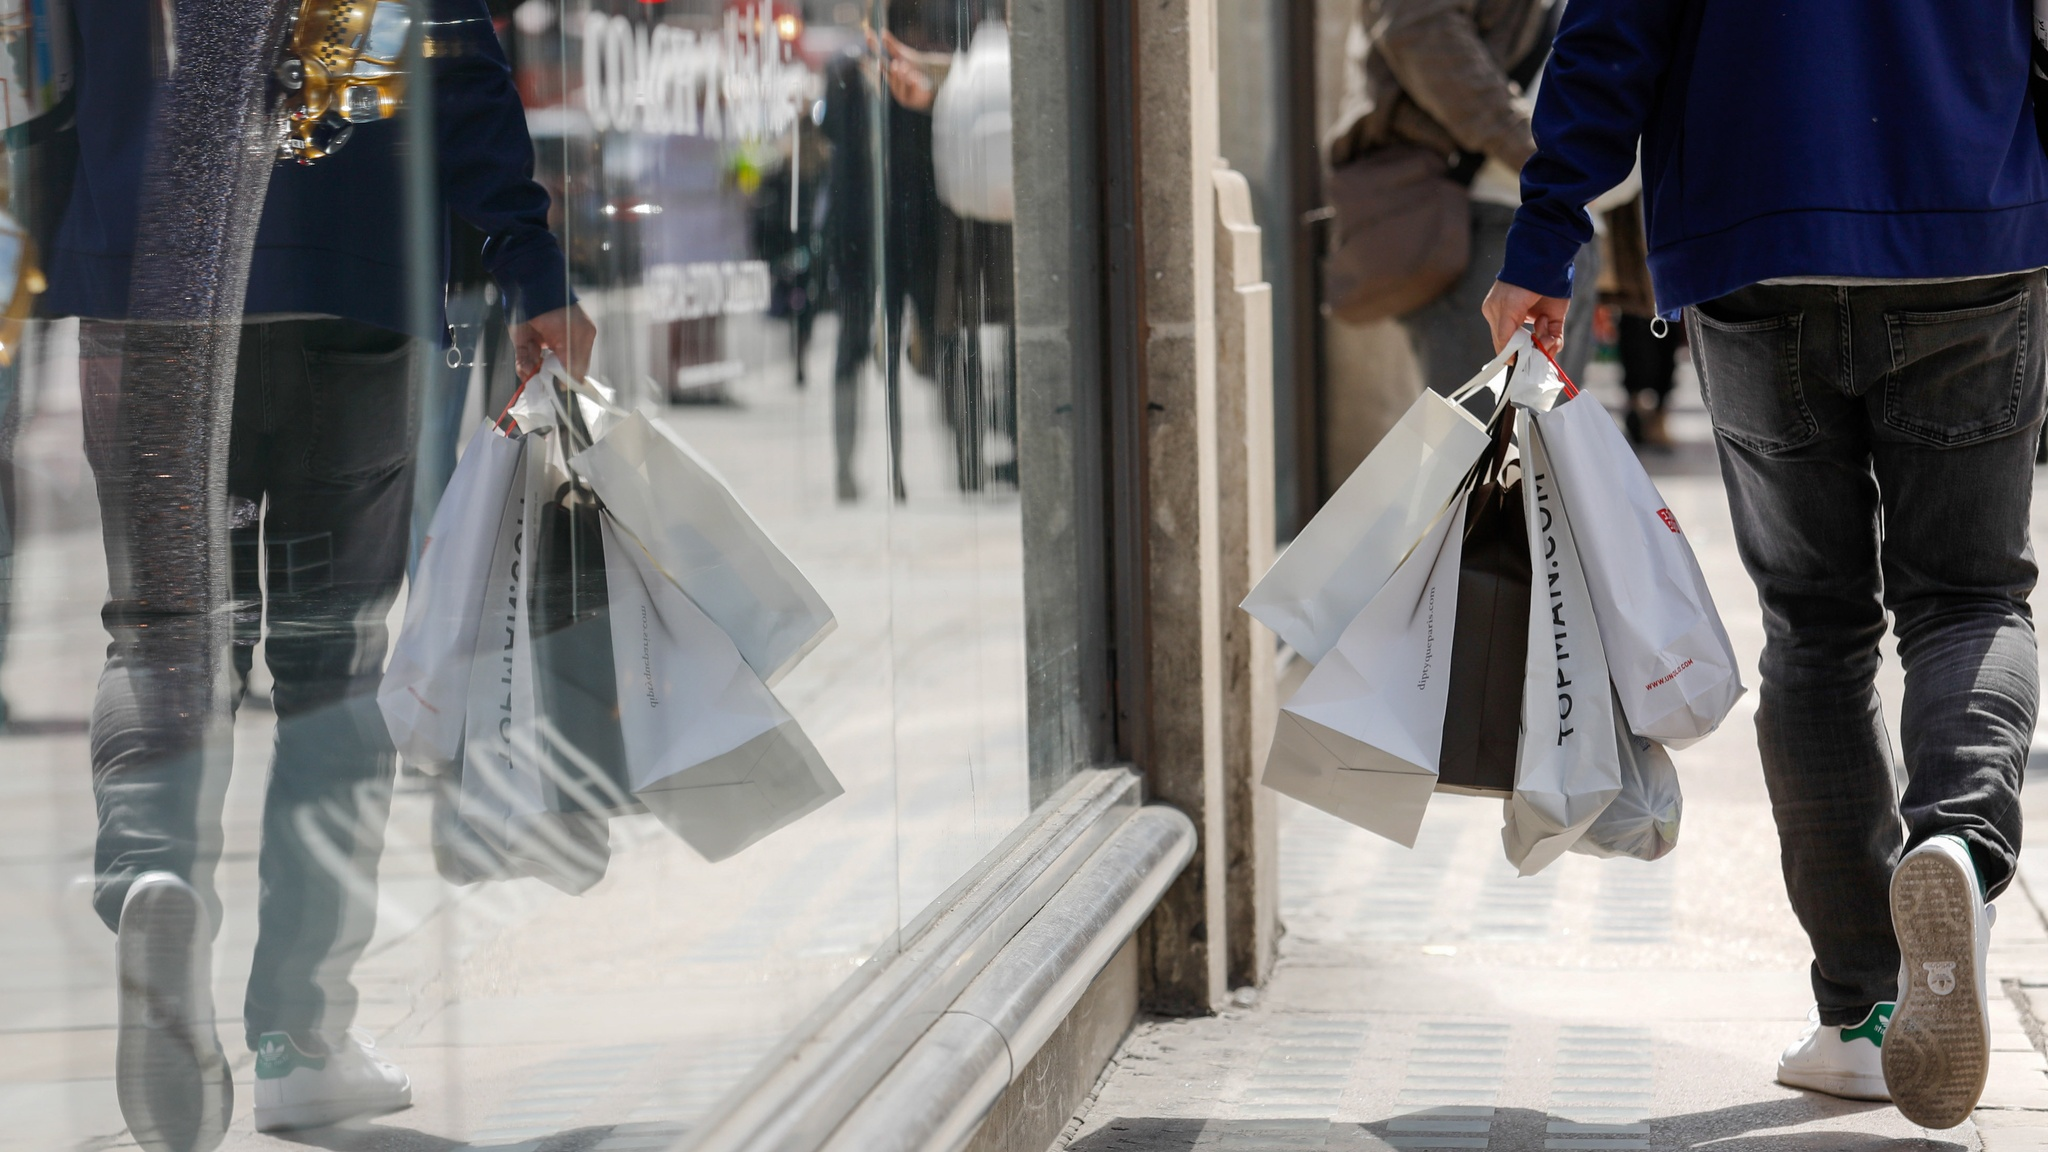 UK inflation rate stays at three-year low, supporting shoppers